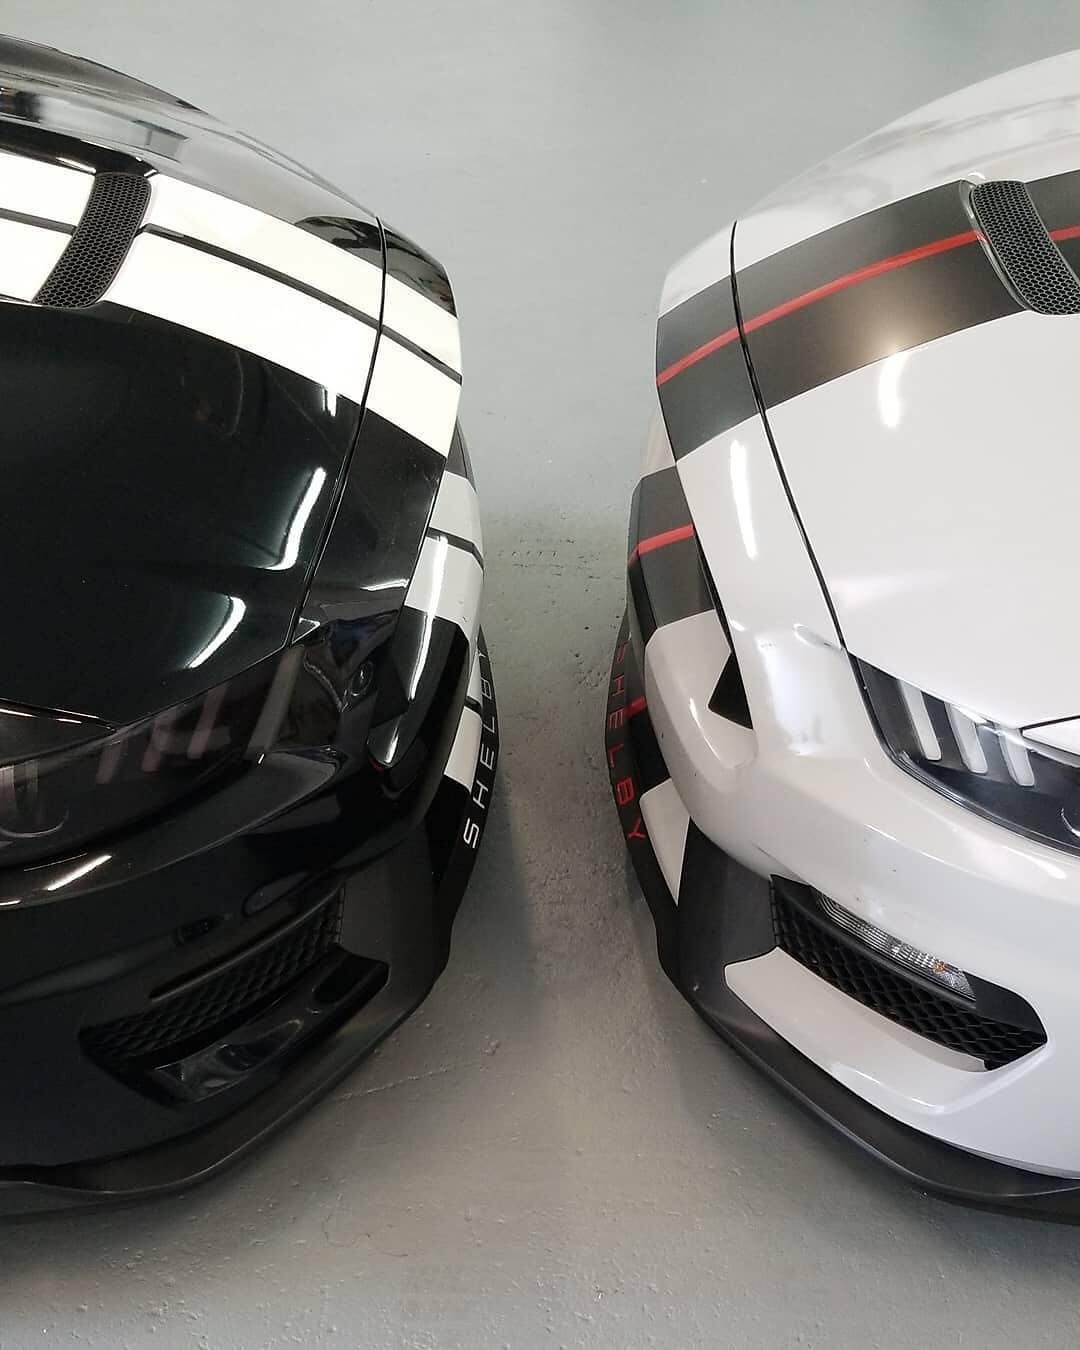 Muscle Cars, Black Vs White Shelby americanstyle